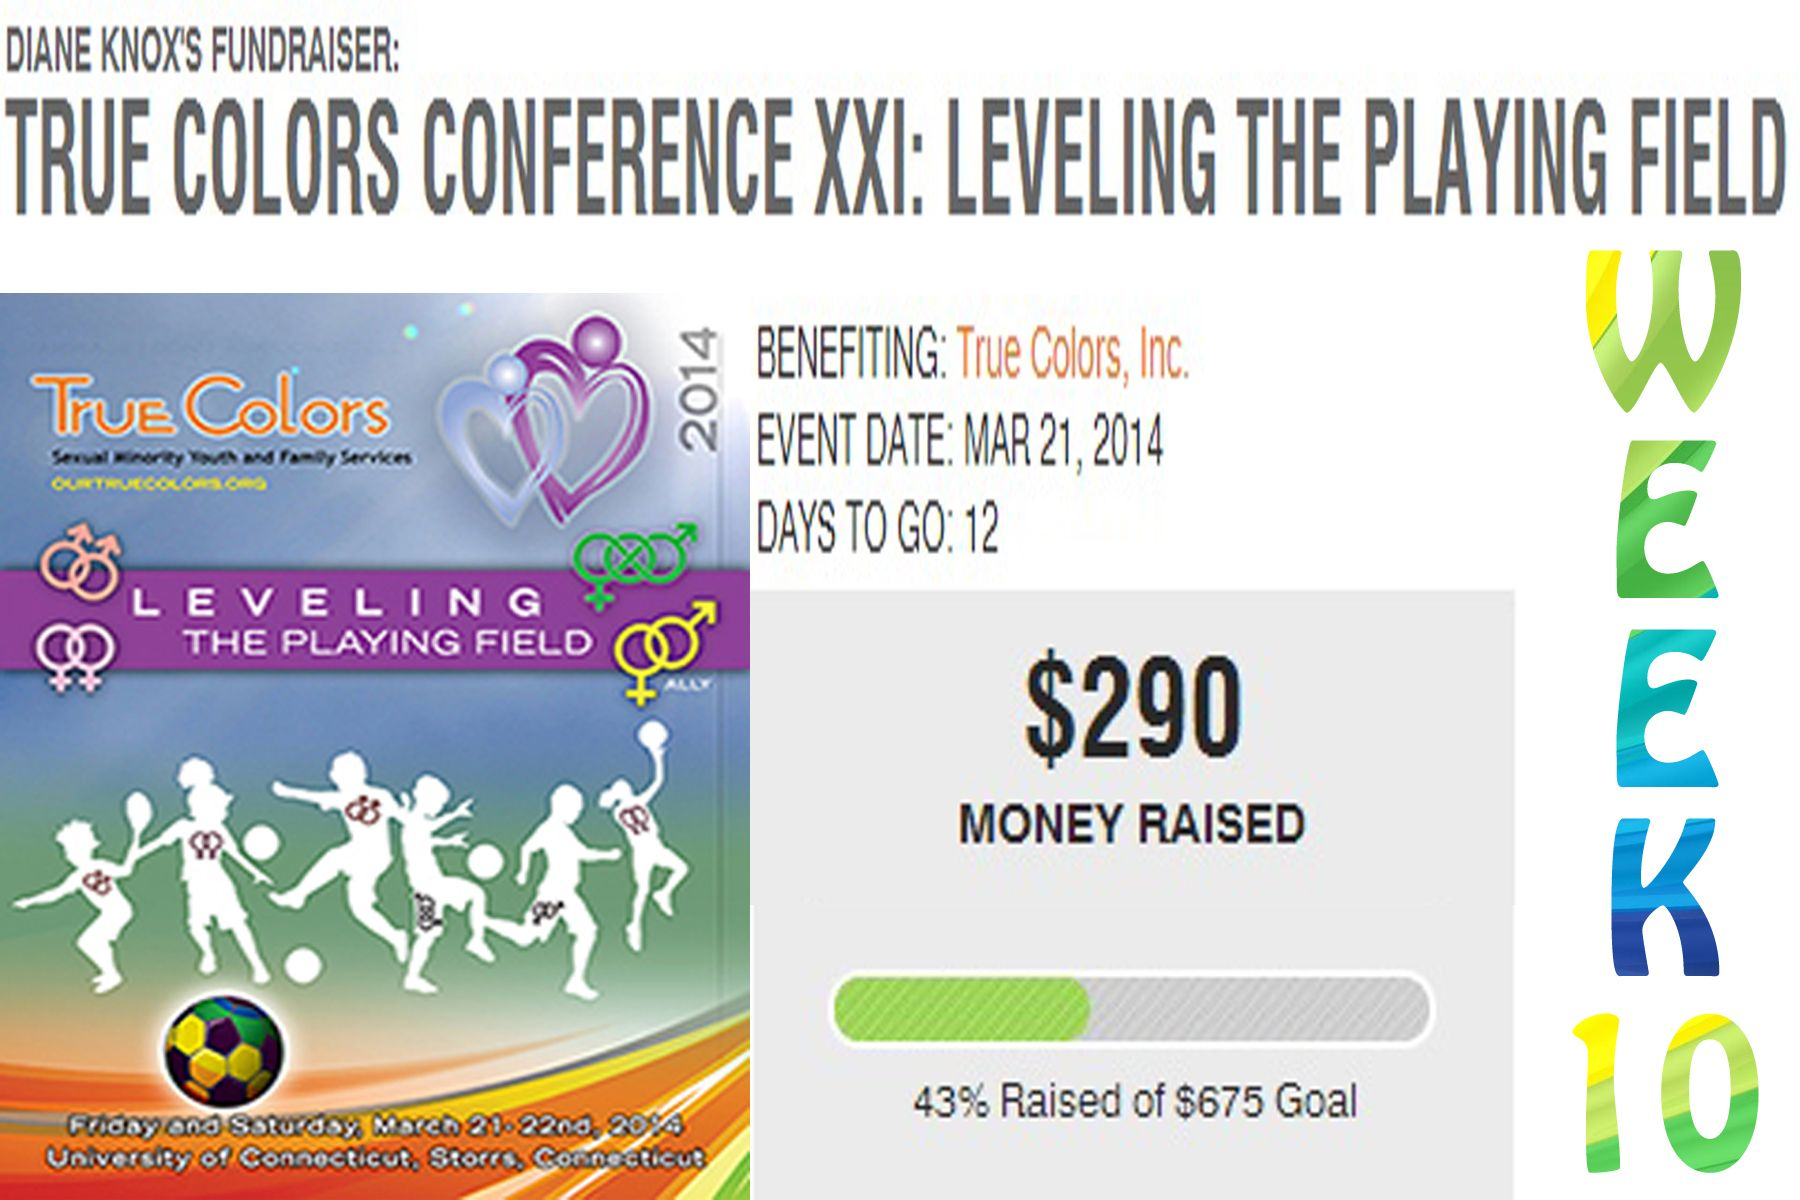 f YOU would like to help sponsor youth registration to this year's conference, click here: http://www.crowdrise.com/TCXXILevelingthePlayingField/fundraiser/dianeknox